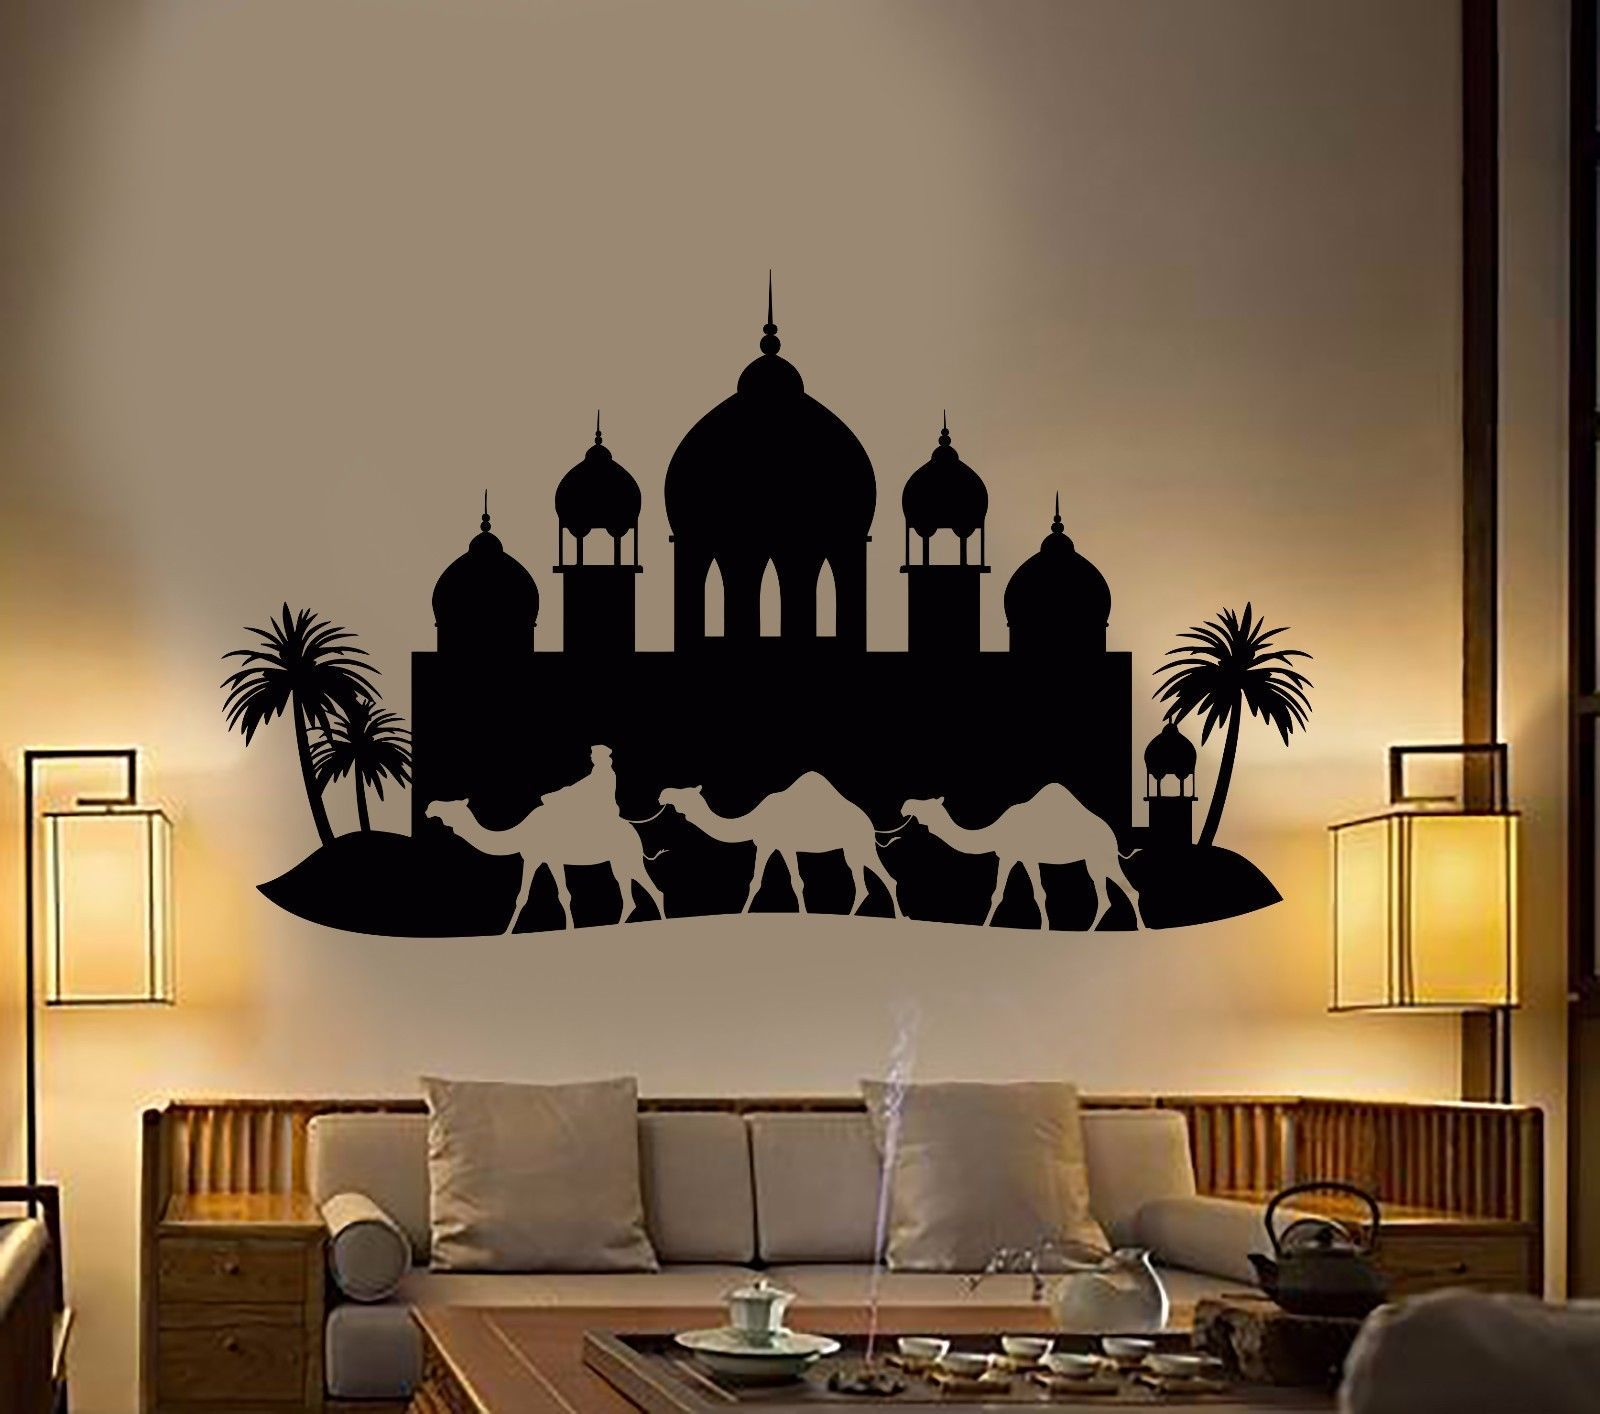 Vinyl Wall Decal Arabian Palace Palm Trees Bedouin Arabic Style